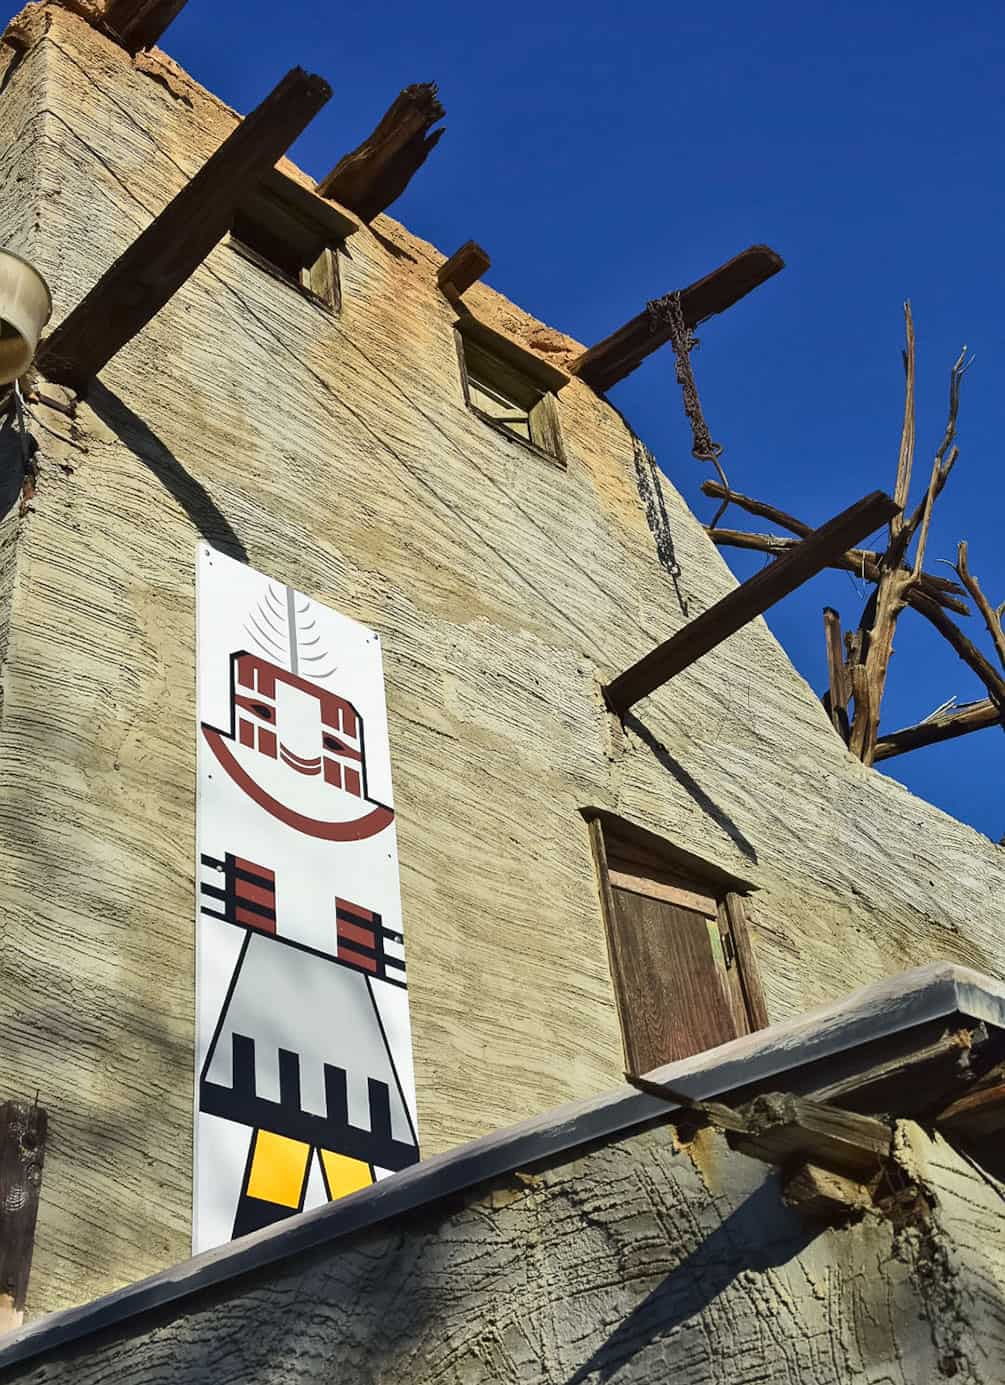 Kachina painting on the side of Cabot's Pueblo Museum